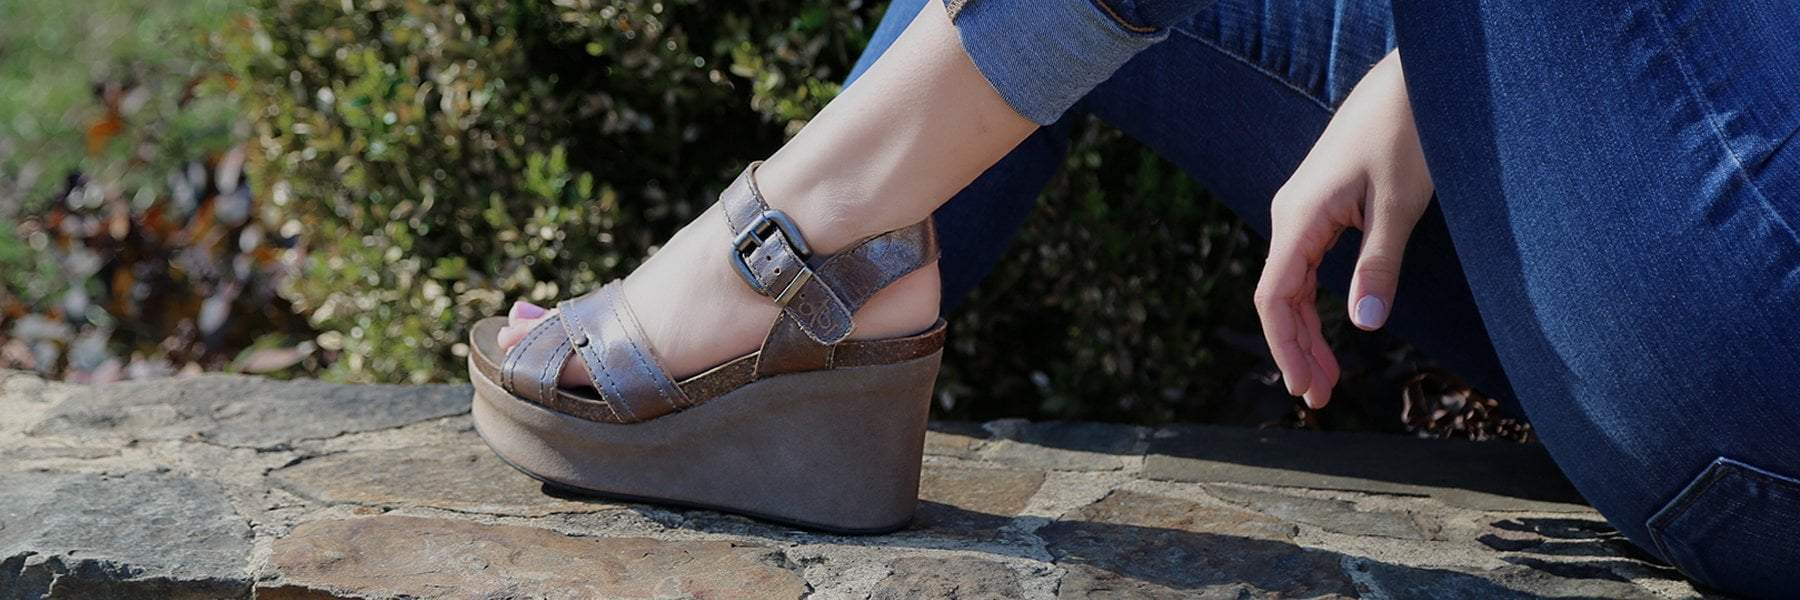 Under $99 Wedges & Platforms